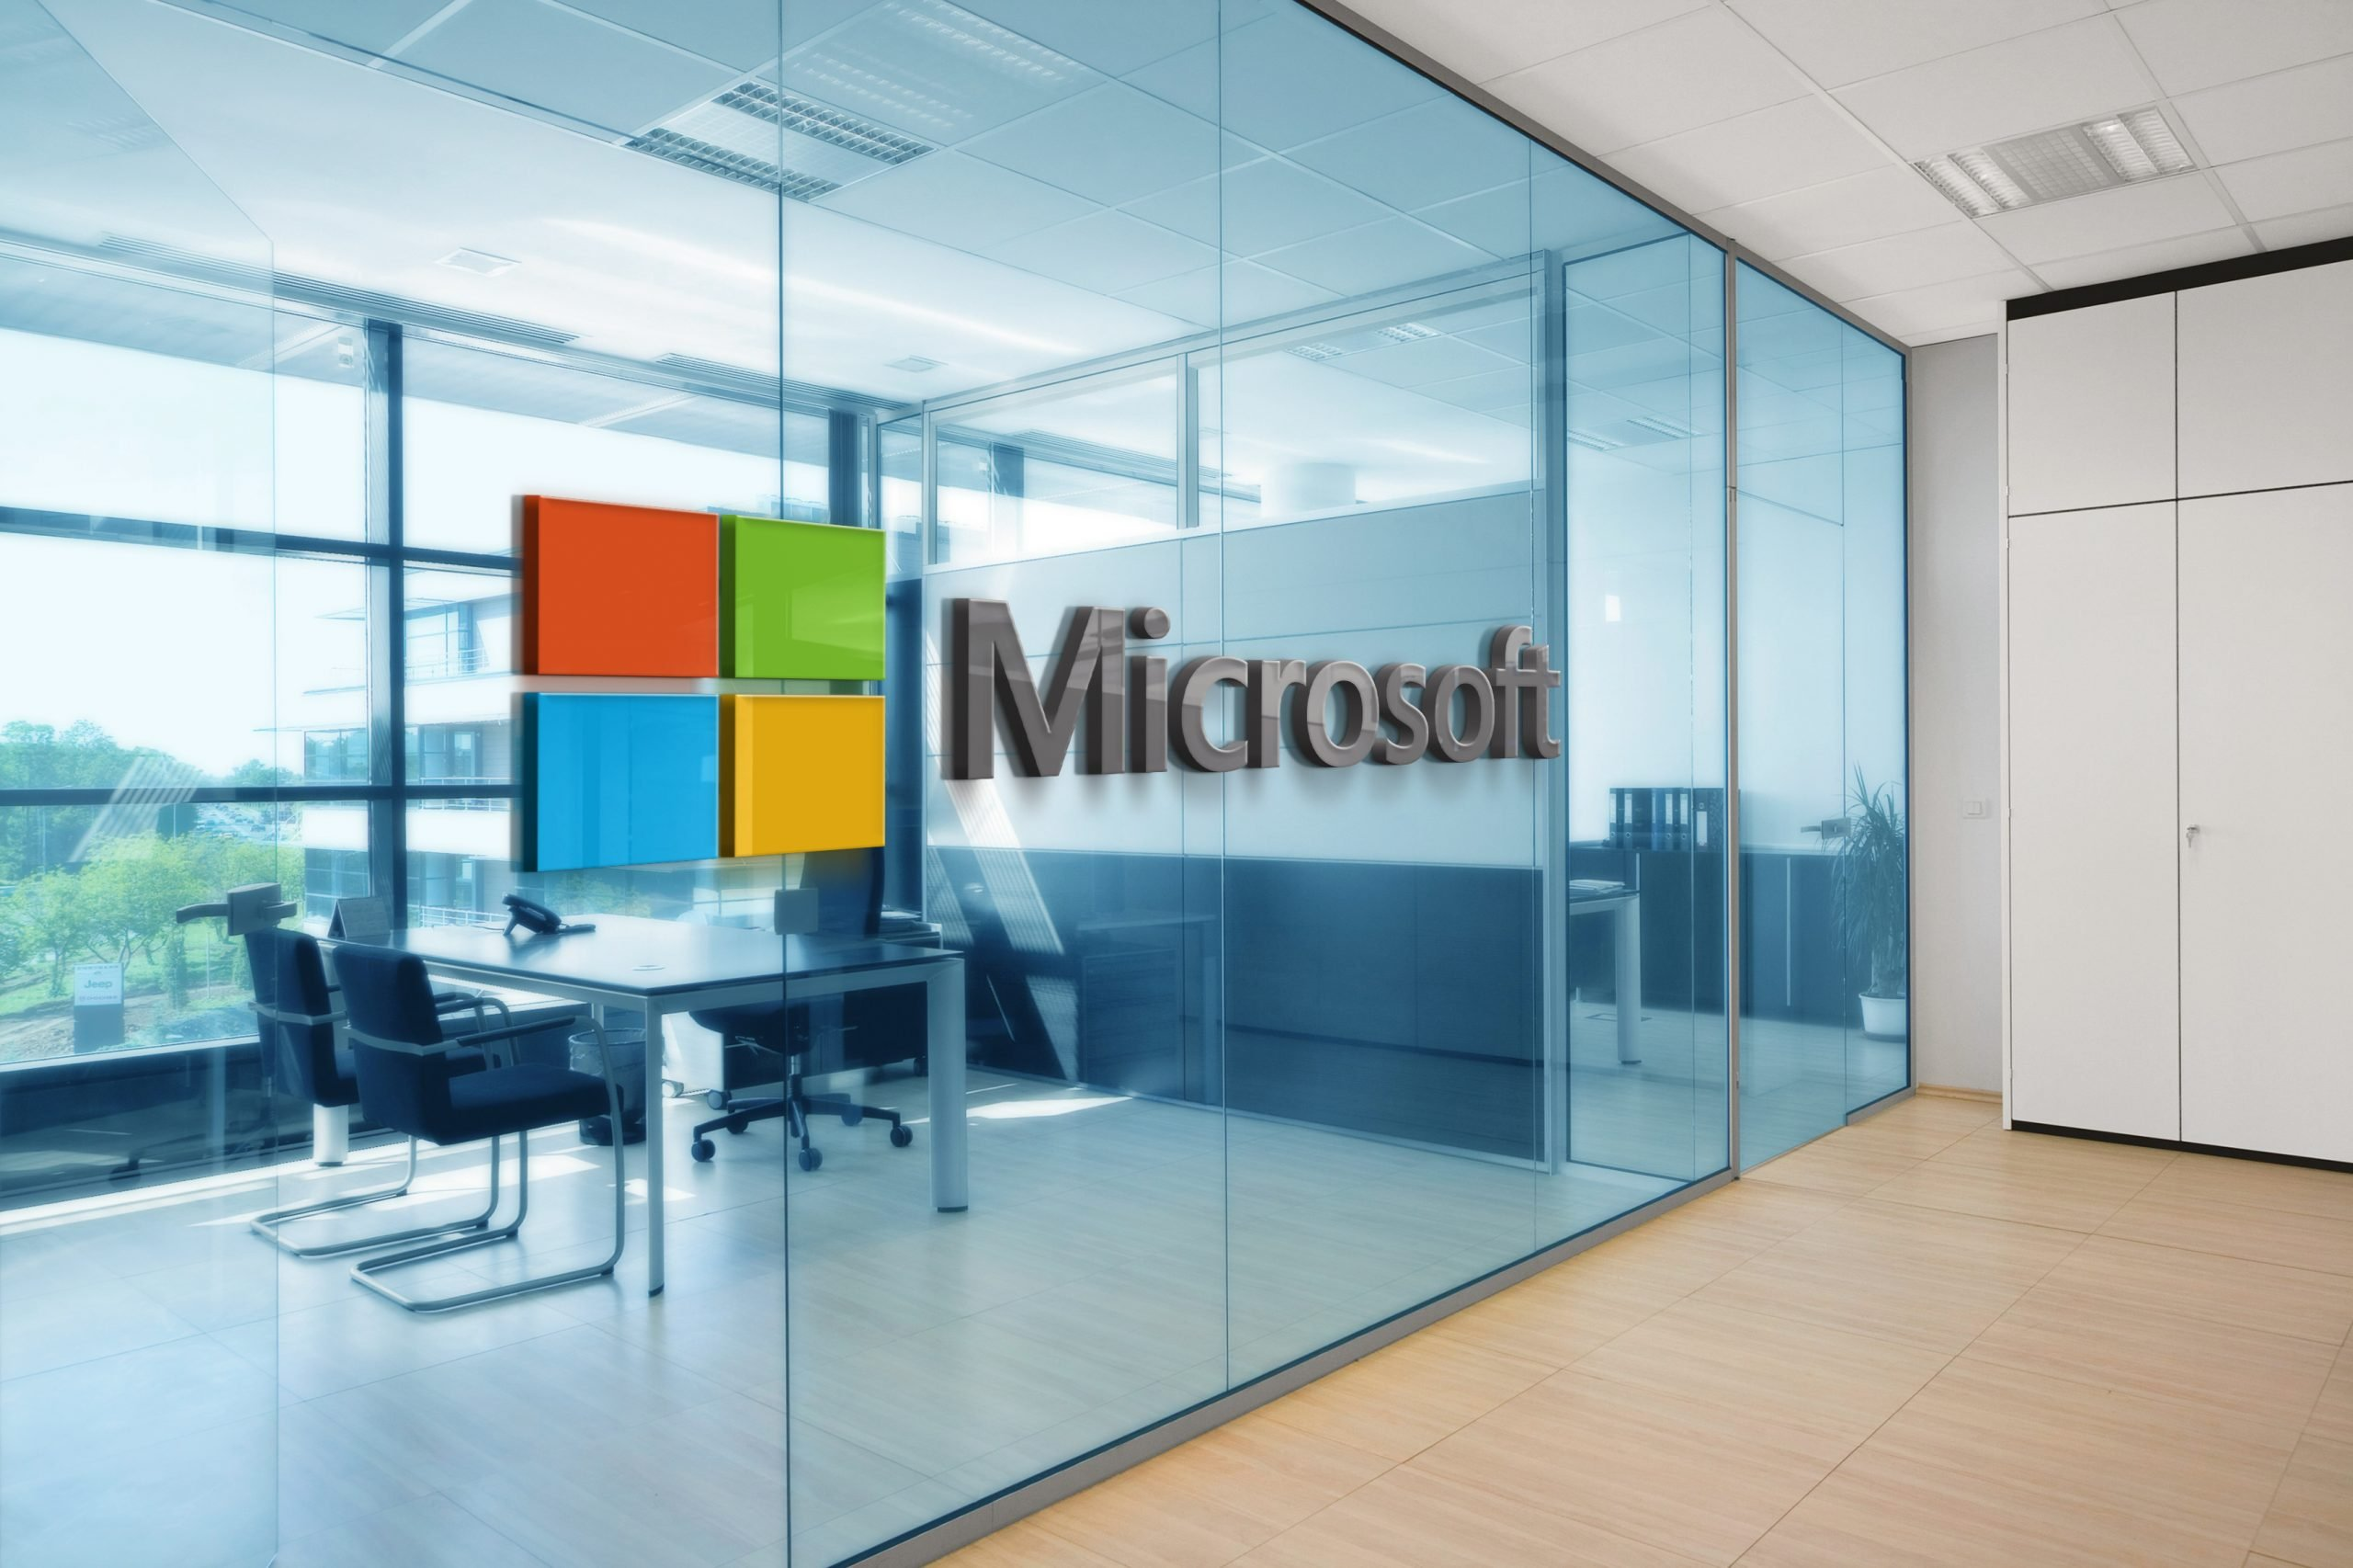 Microsoft Office Space Window Logo Mockup